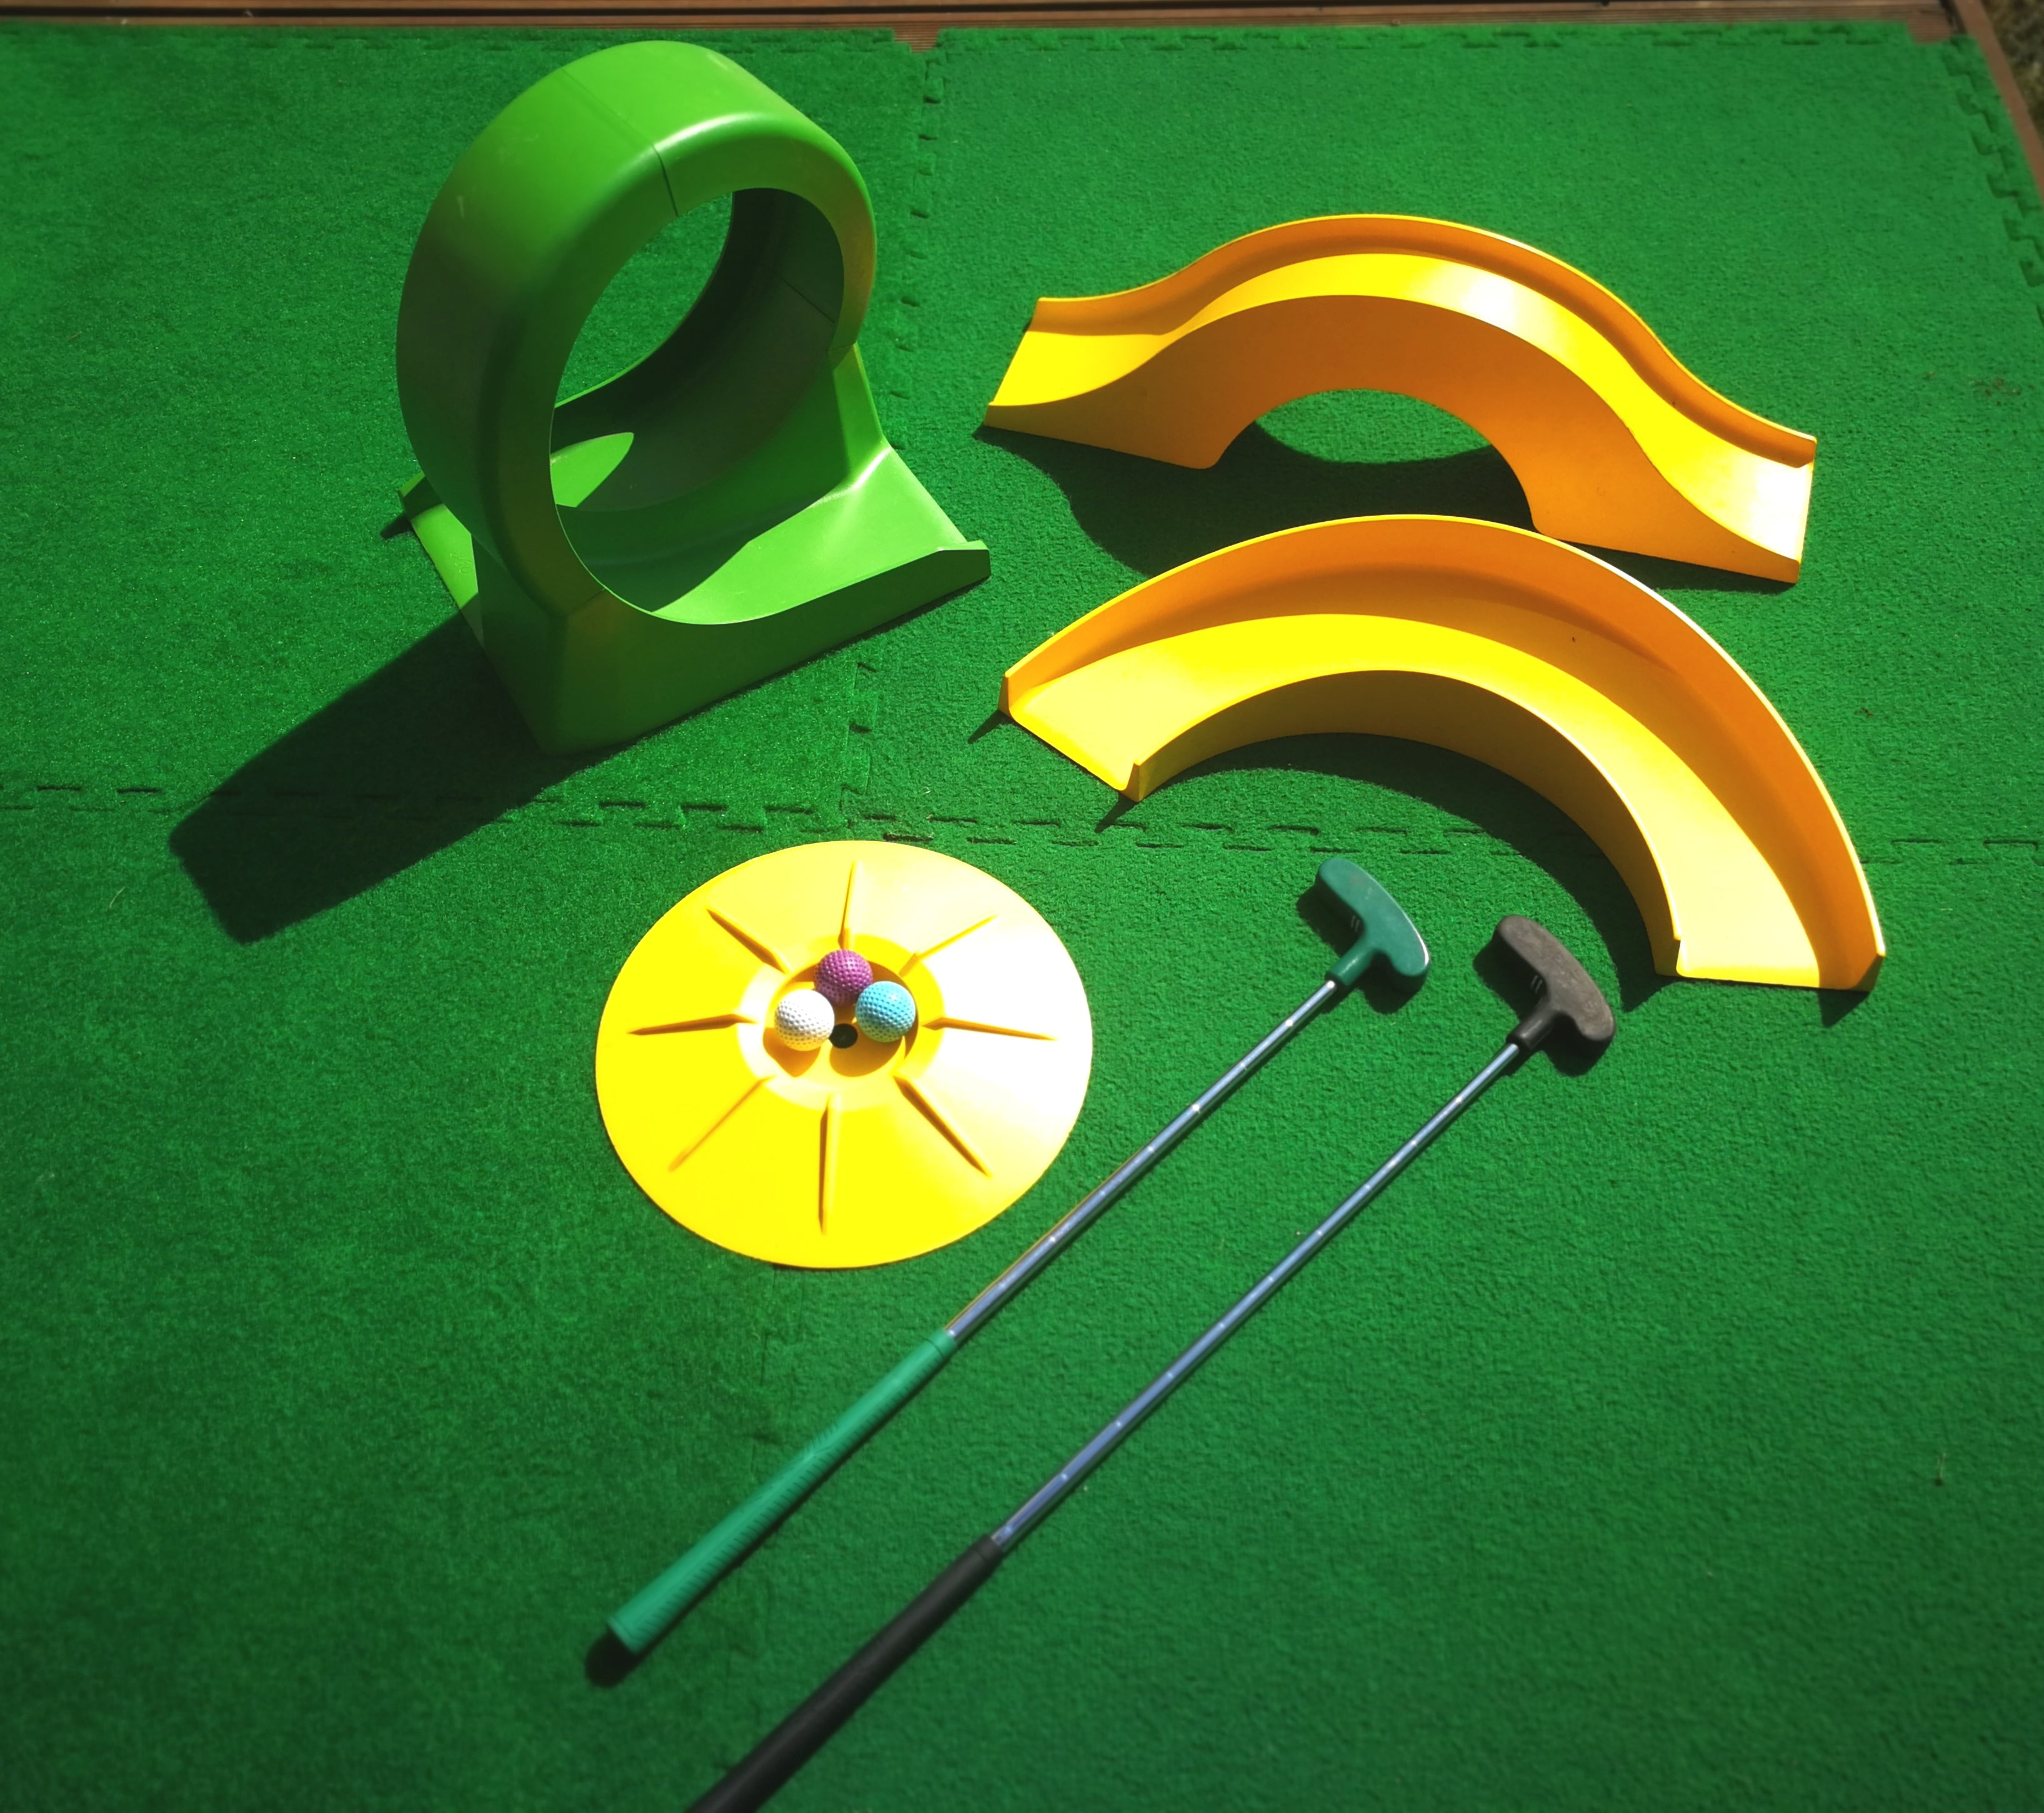 My MiniGolf Set - Small